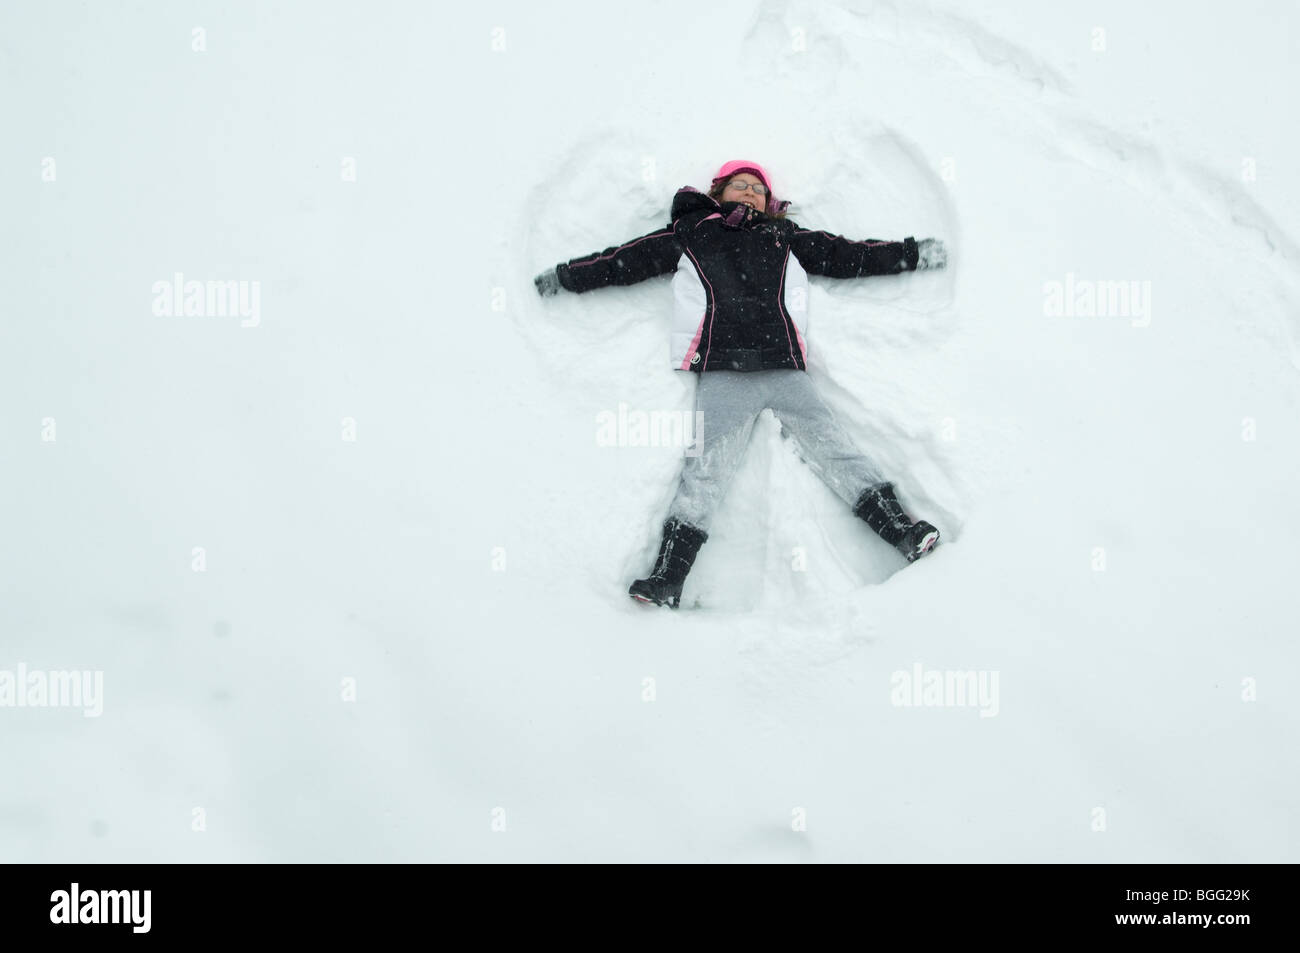 Making a Snow Angel - Stock Image